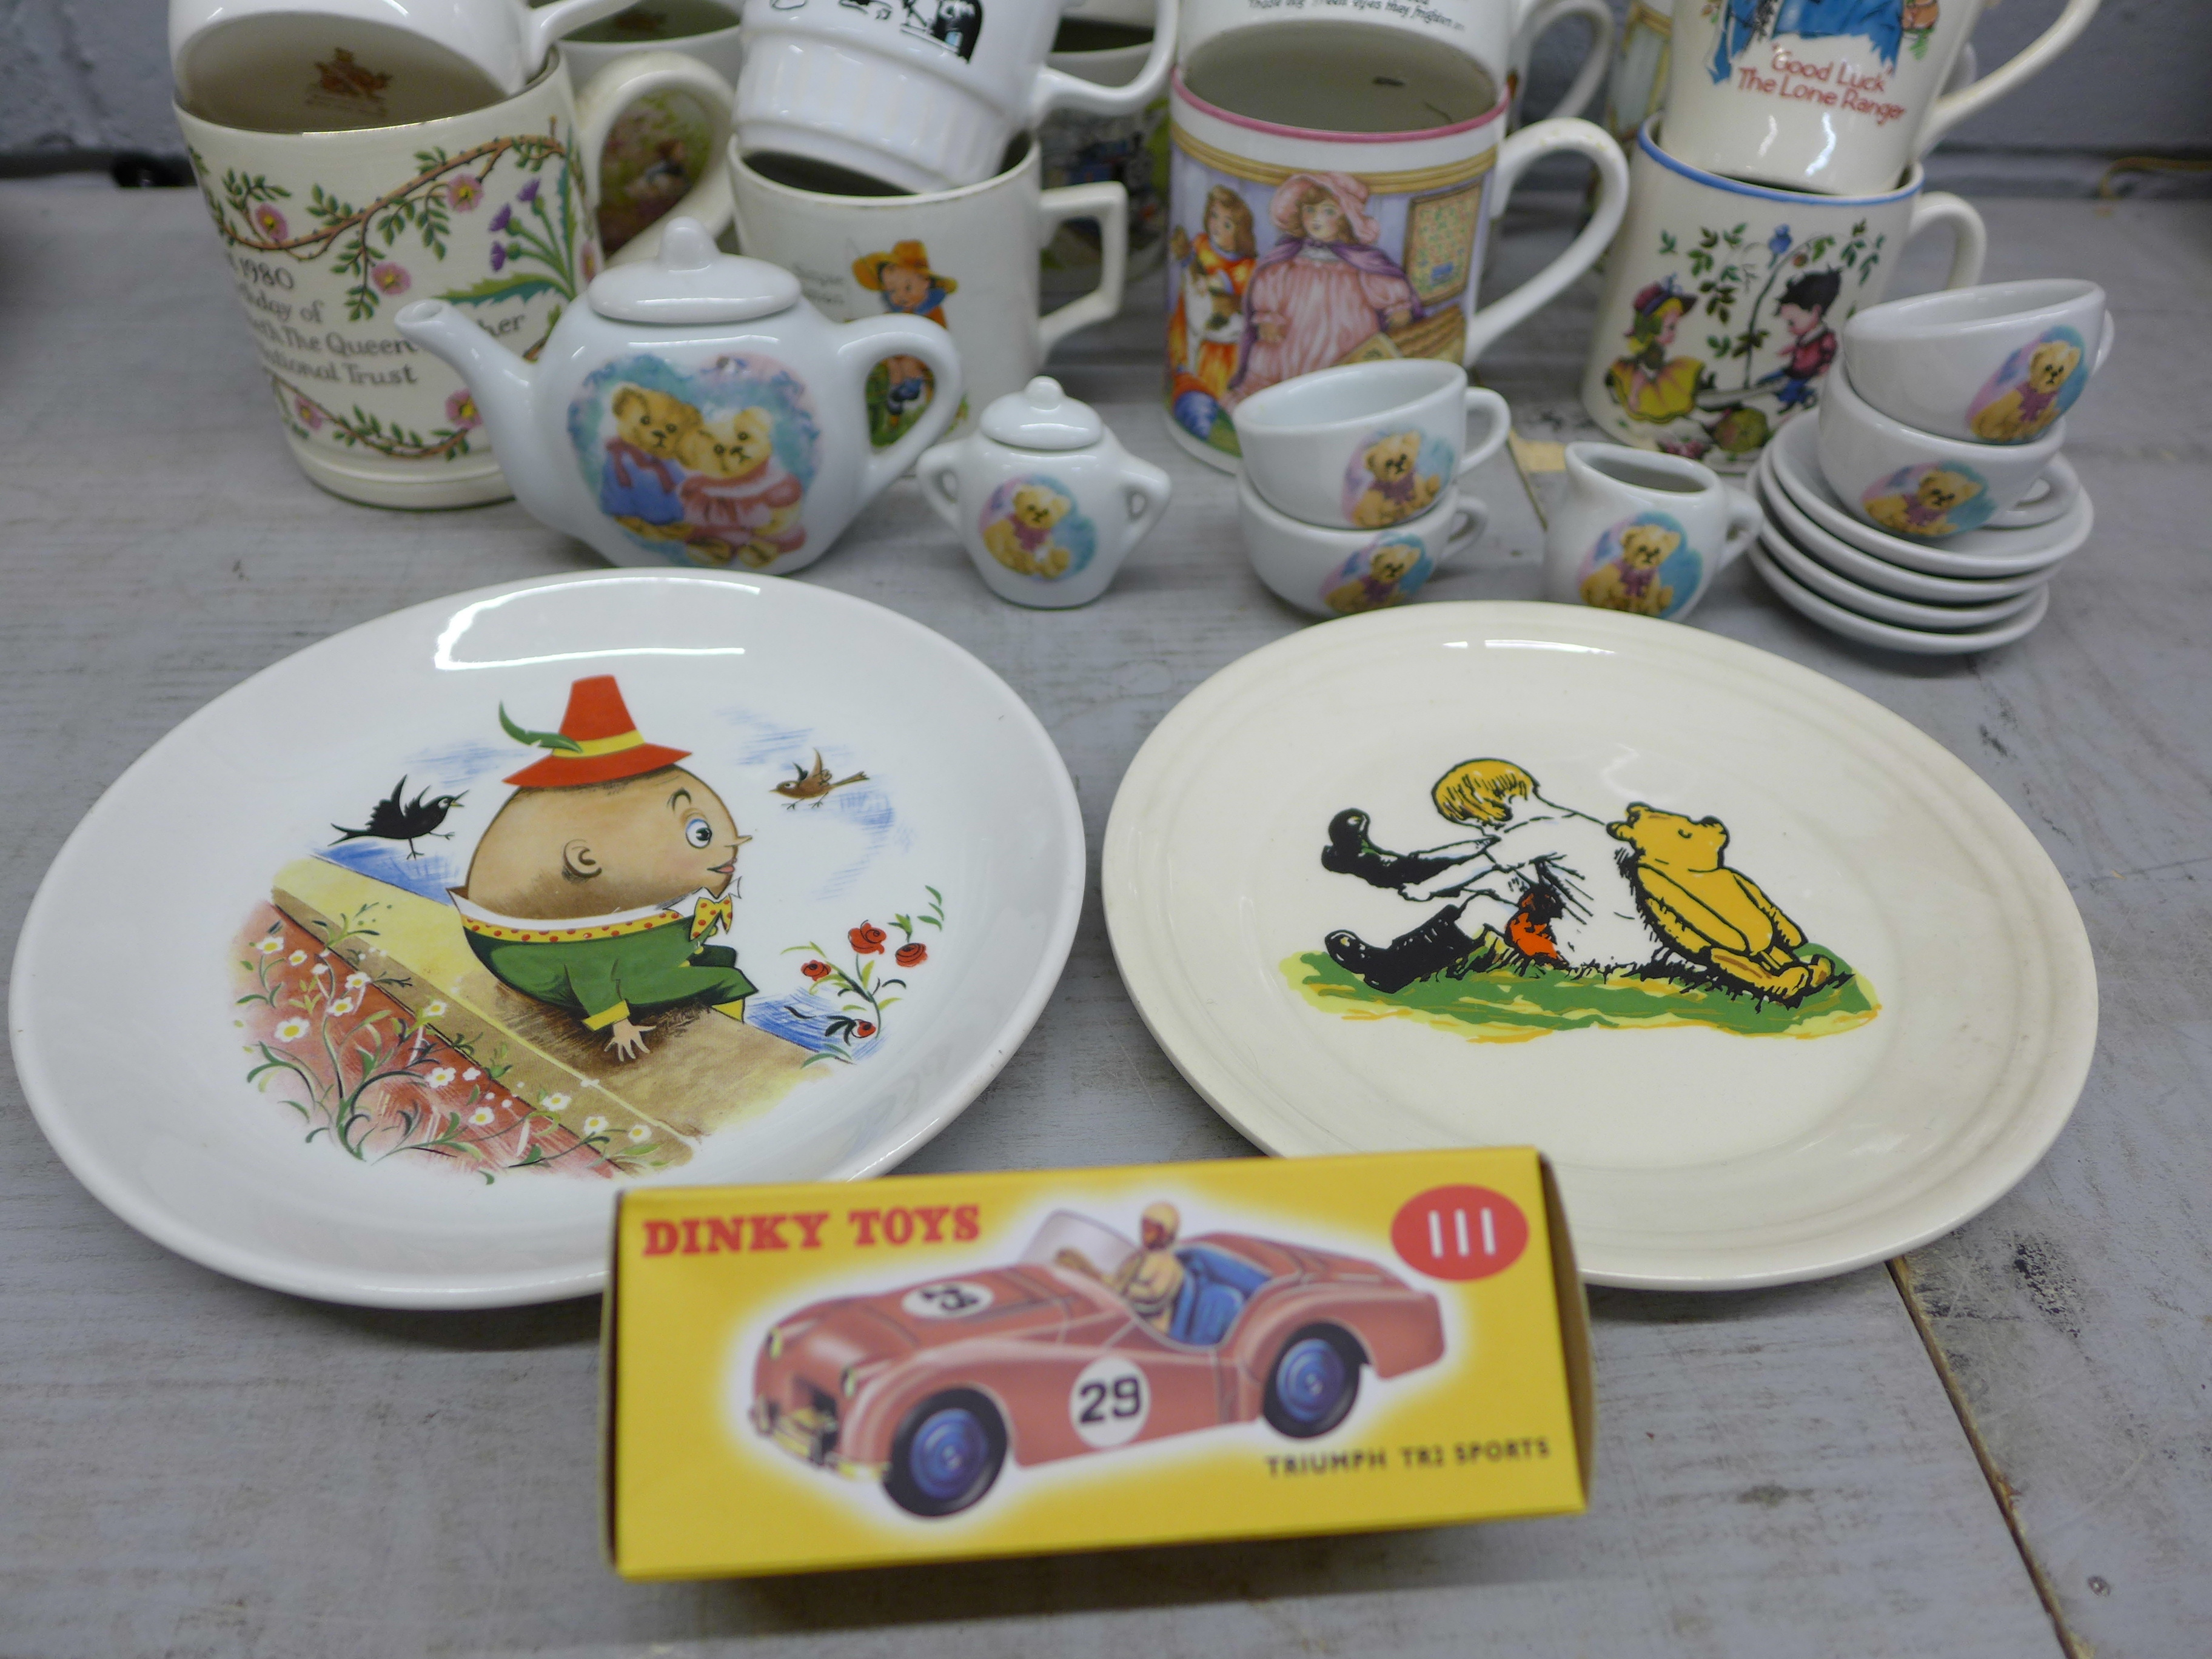 An assortment of childrens mugs, plates, a toy tea set and a Boncath pottery Queen Elizabeth 80th - Image 3 of 3